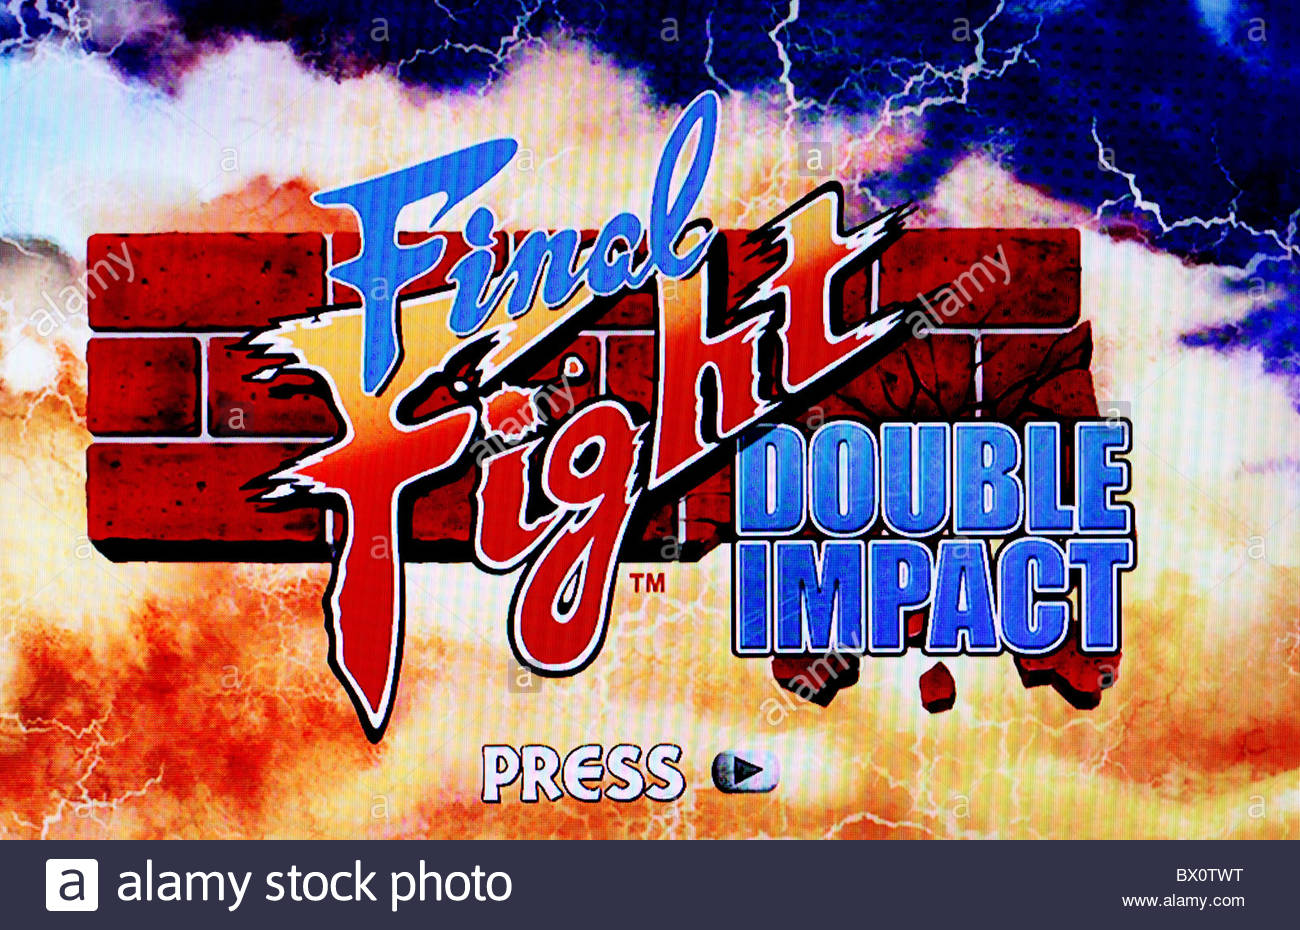 Final fight double impact title screen shot - Stock Image